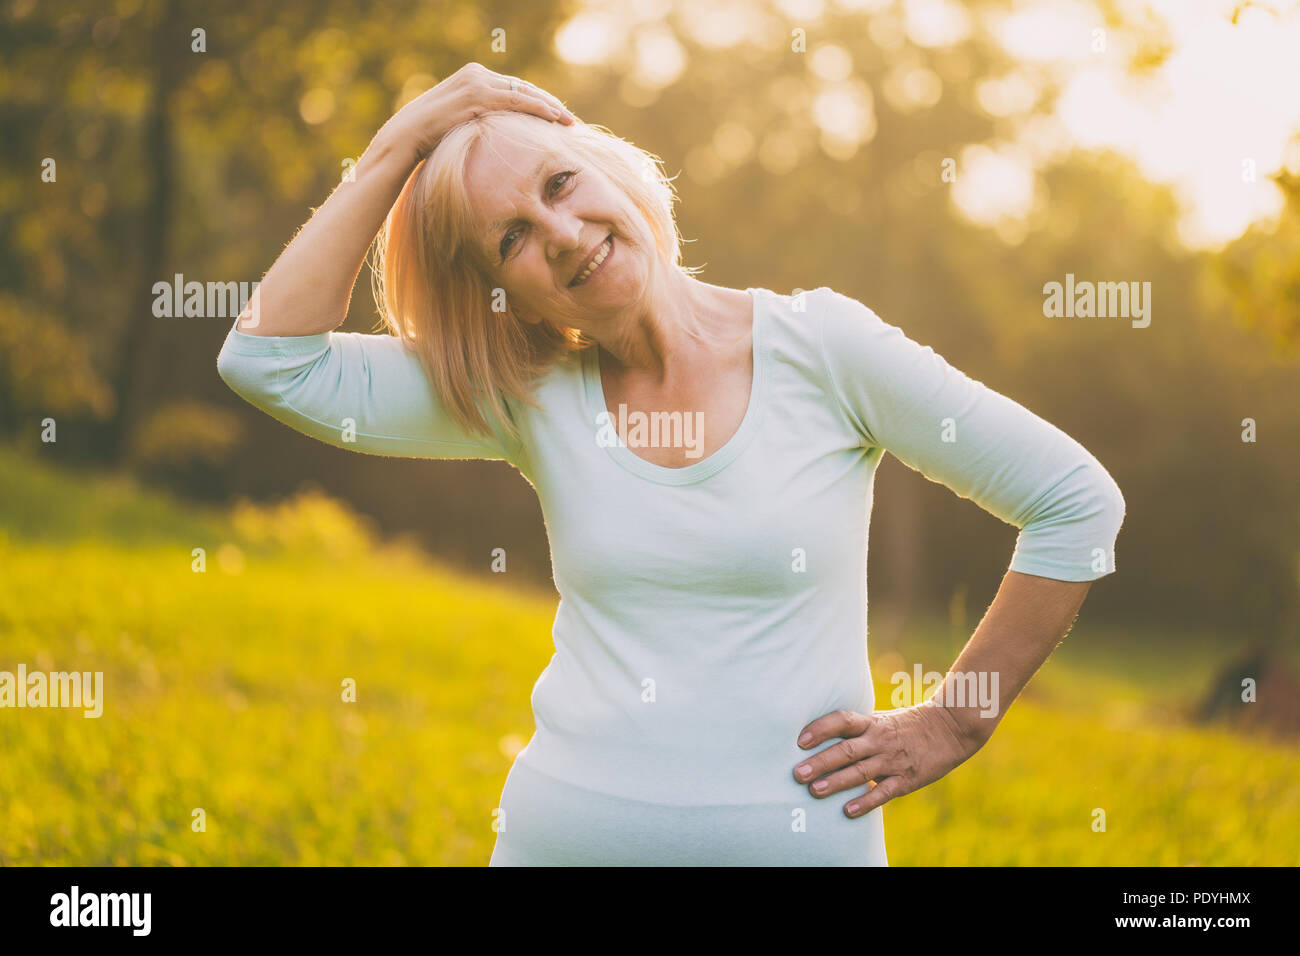 Sporty senior woman exercising outdoor.Image is intentionally toned. - Stock Image